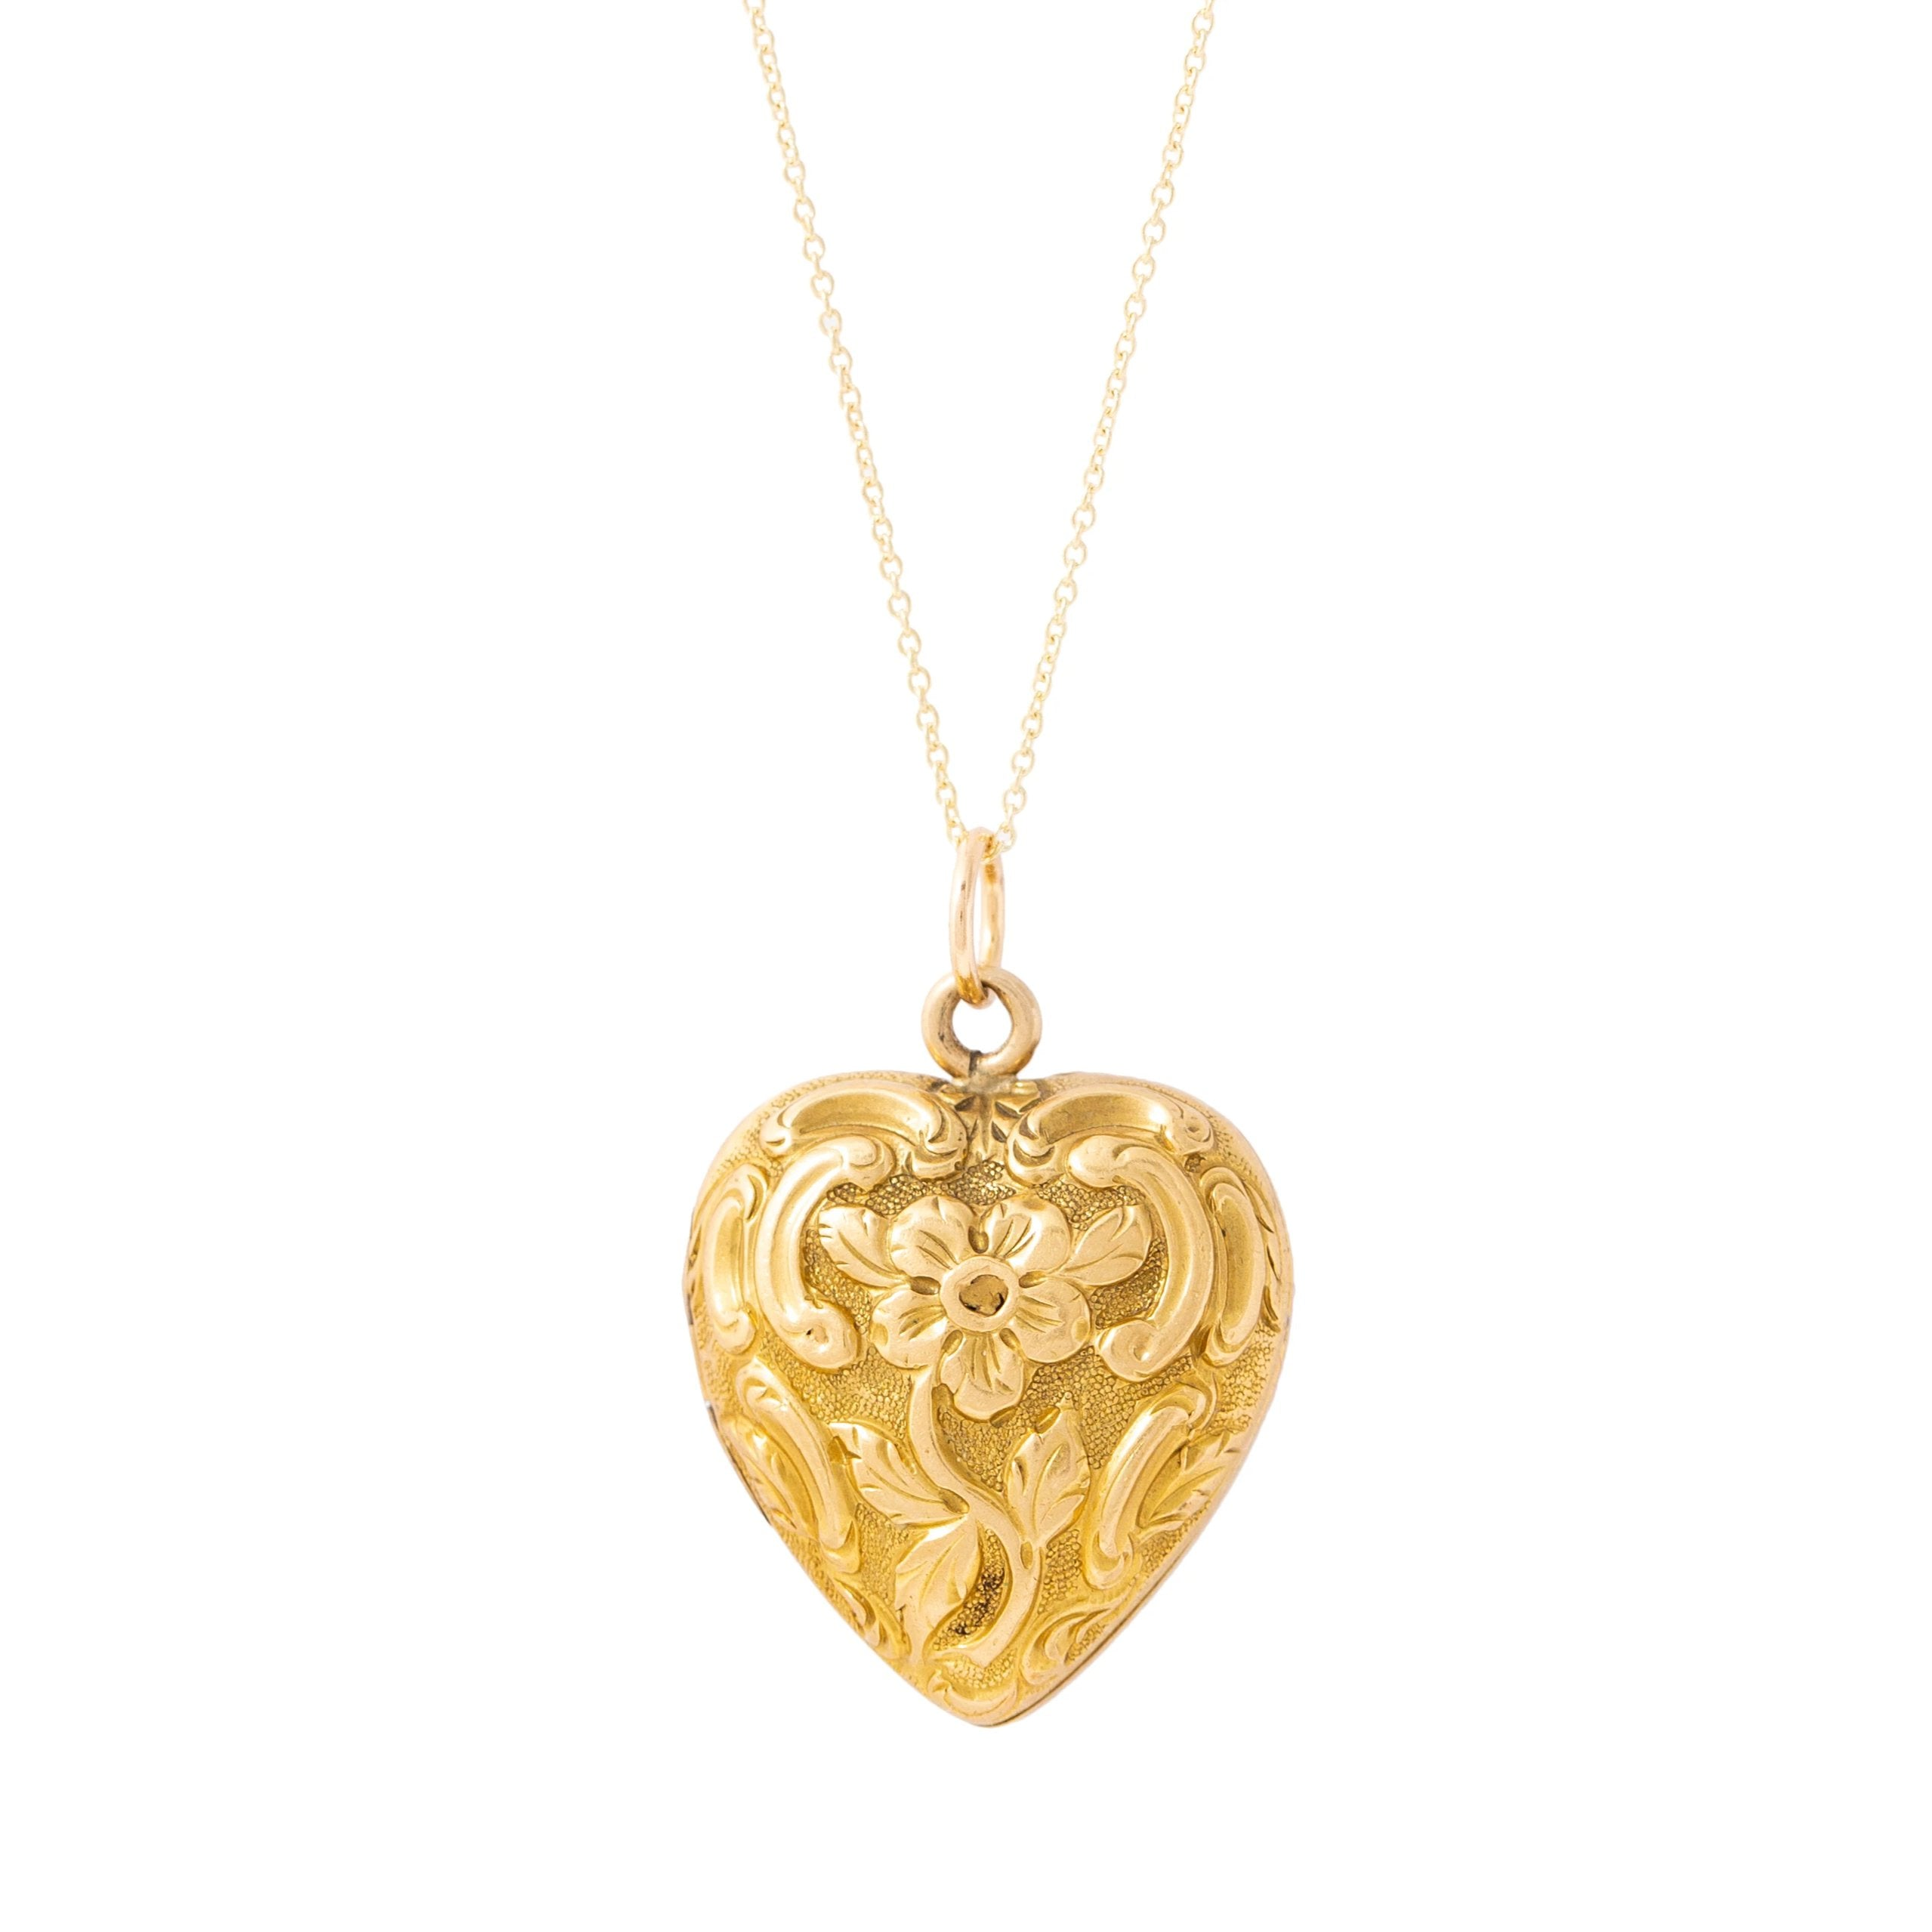 Art Nouveau Floral Repousse 18k Yellow Gold Heart Locket